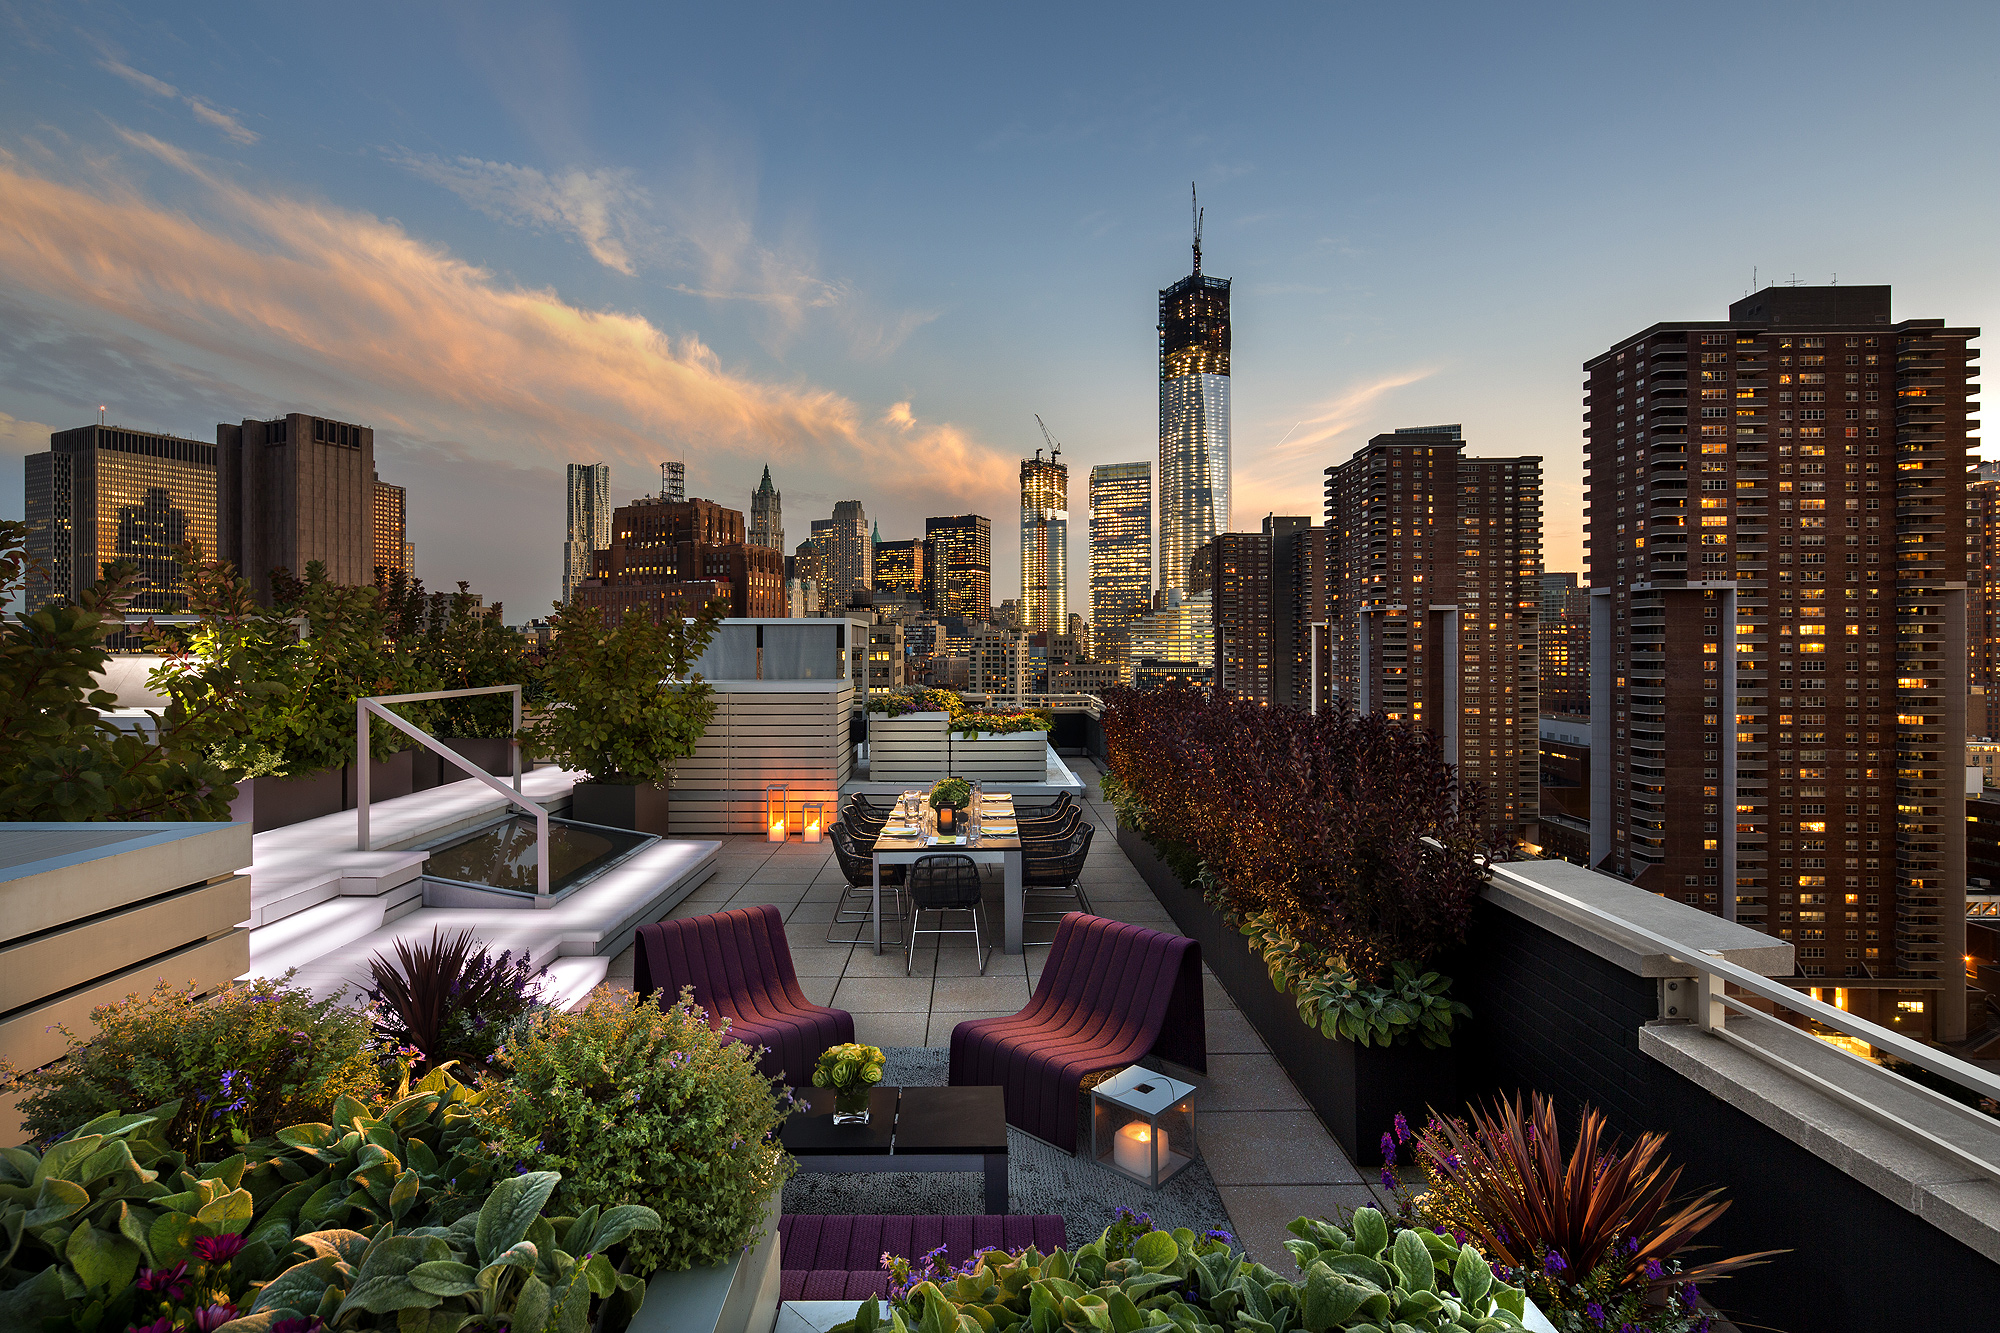 Roof Design Ideas: Live It Up With These Roof Garden Designs